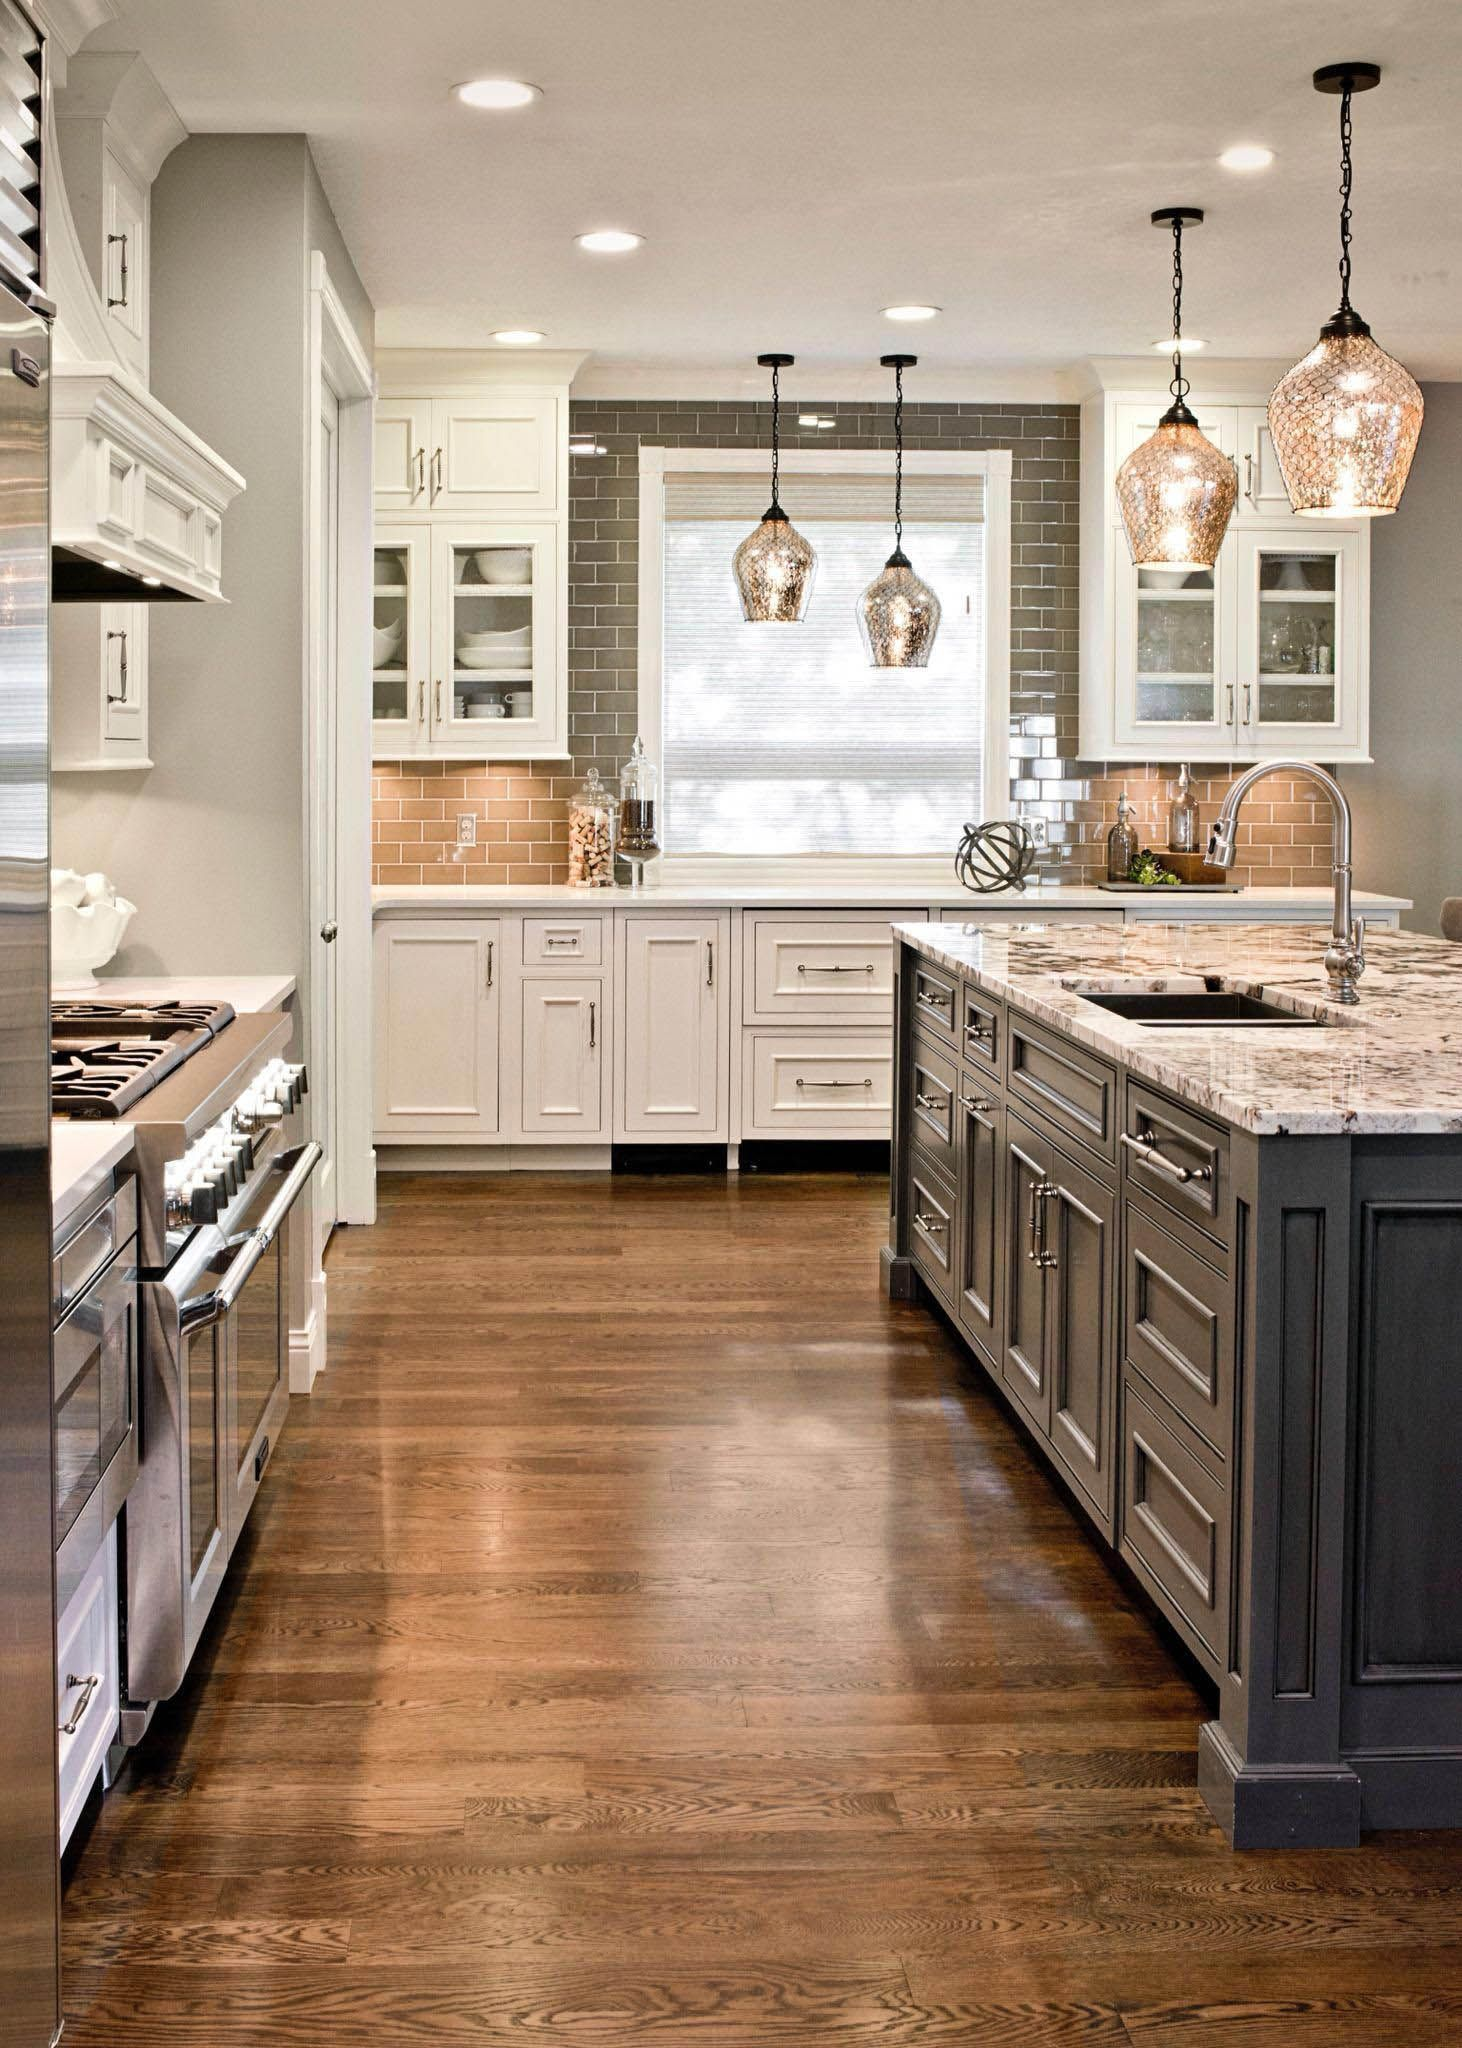 Rustic Kitchen Remodel Ideas in 2020   Kitchen tile ...